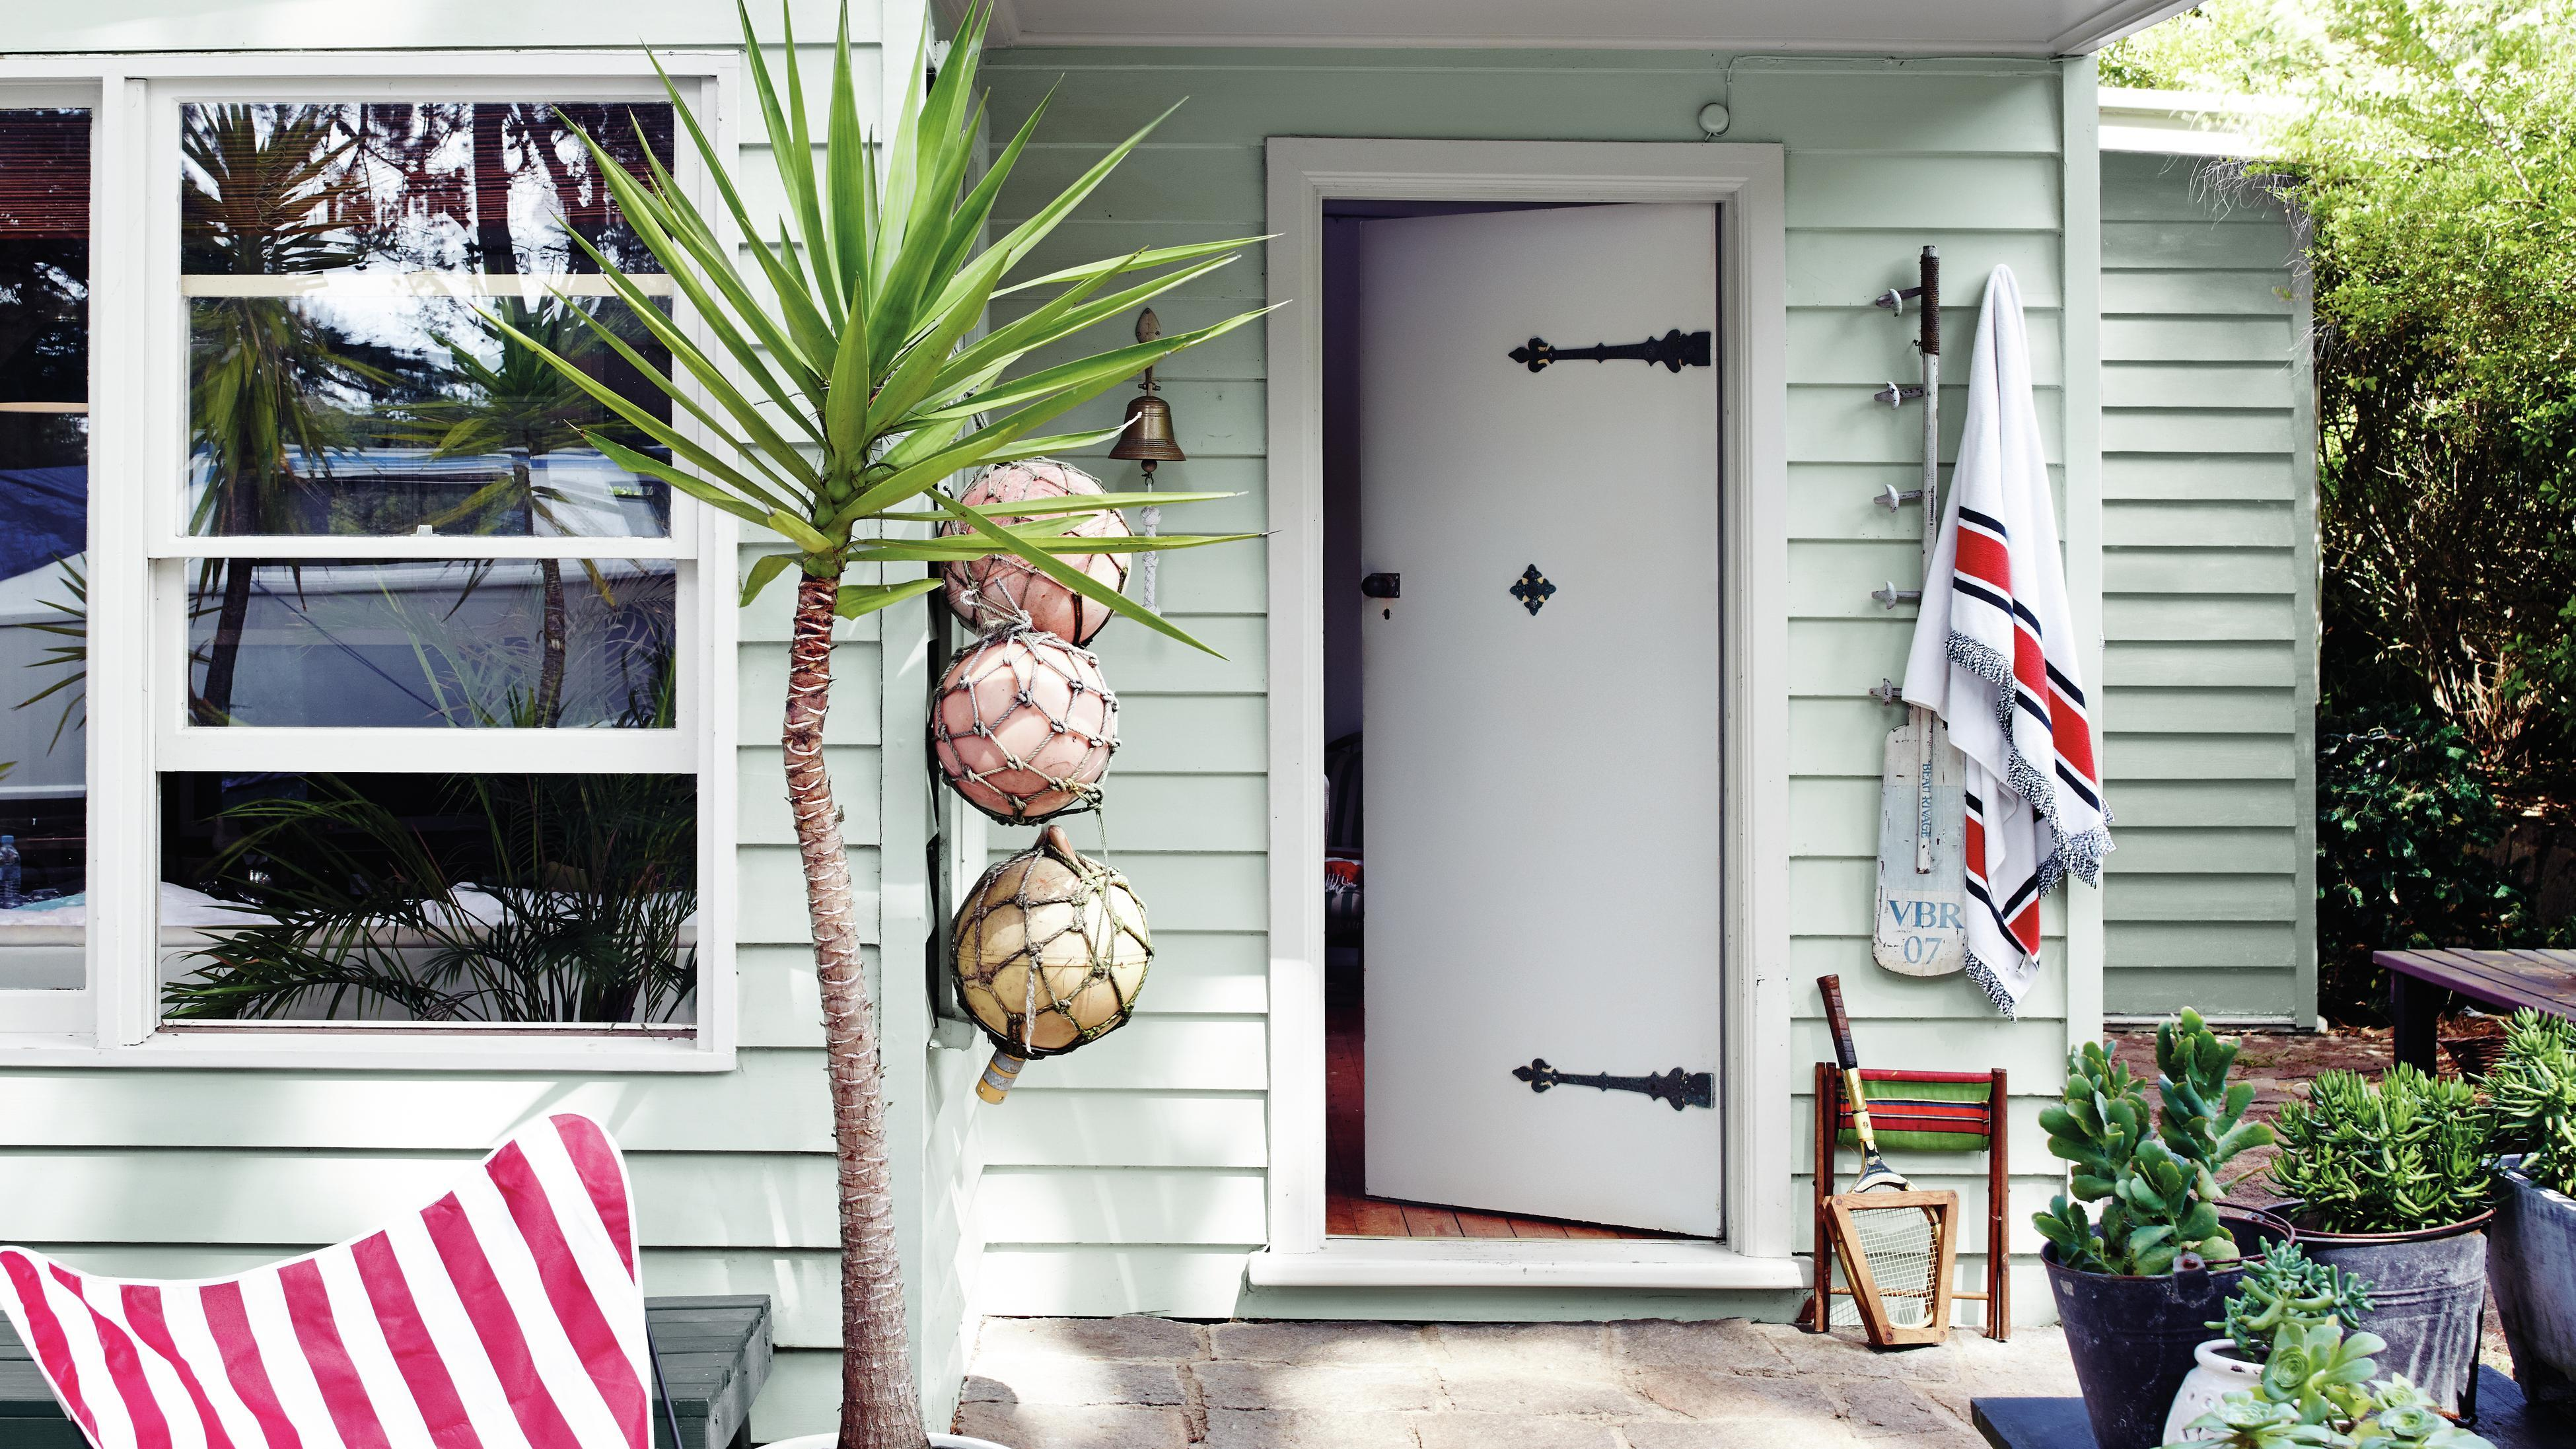 Outside of a weatherboard home with various plants and decor displayed.